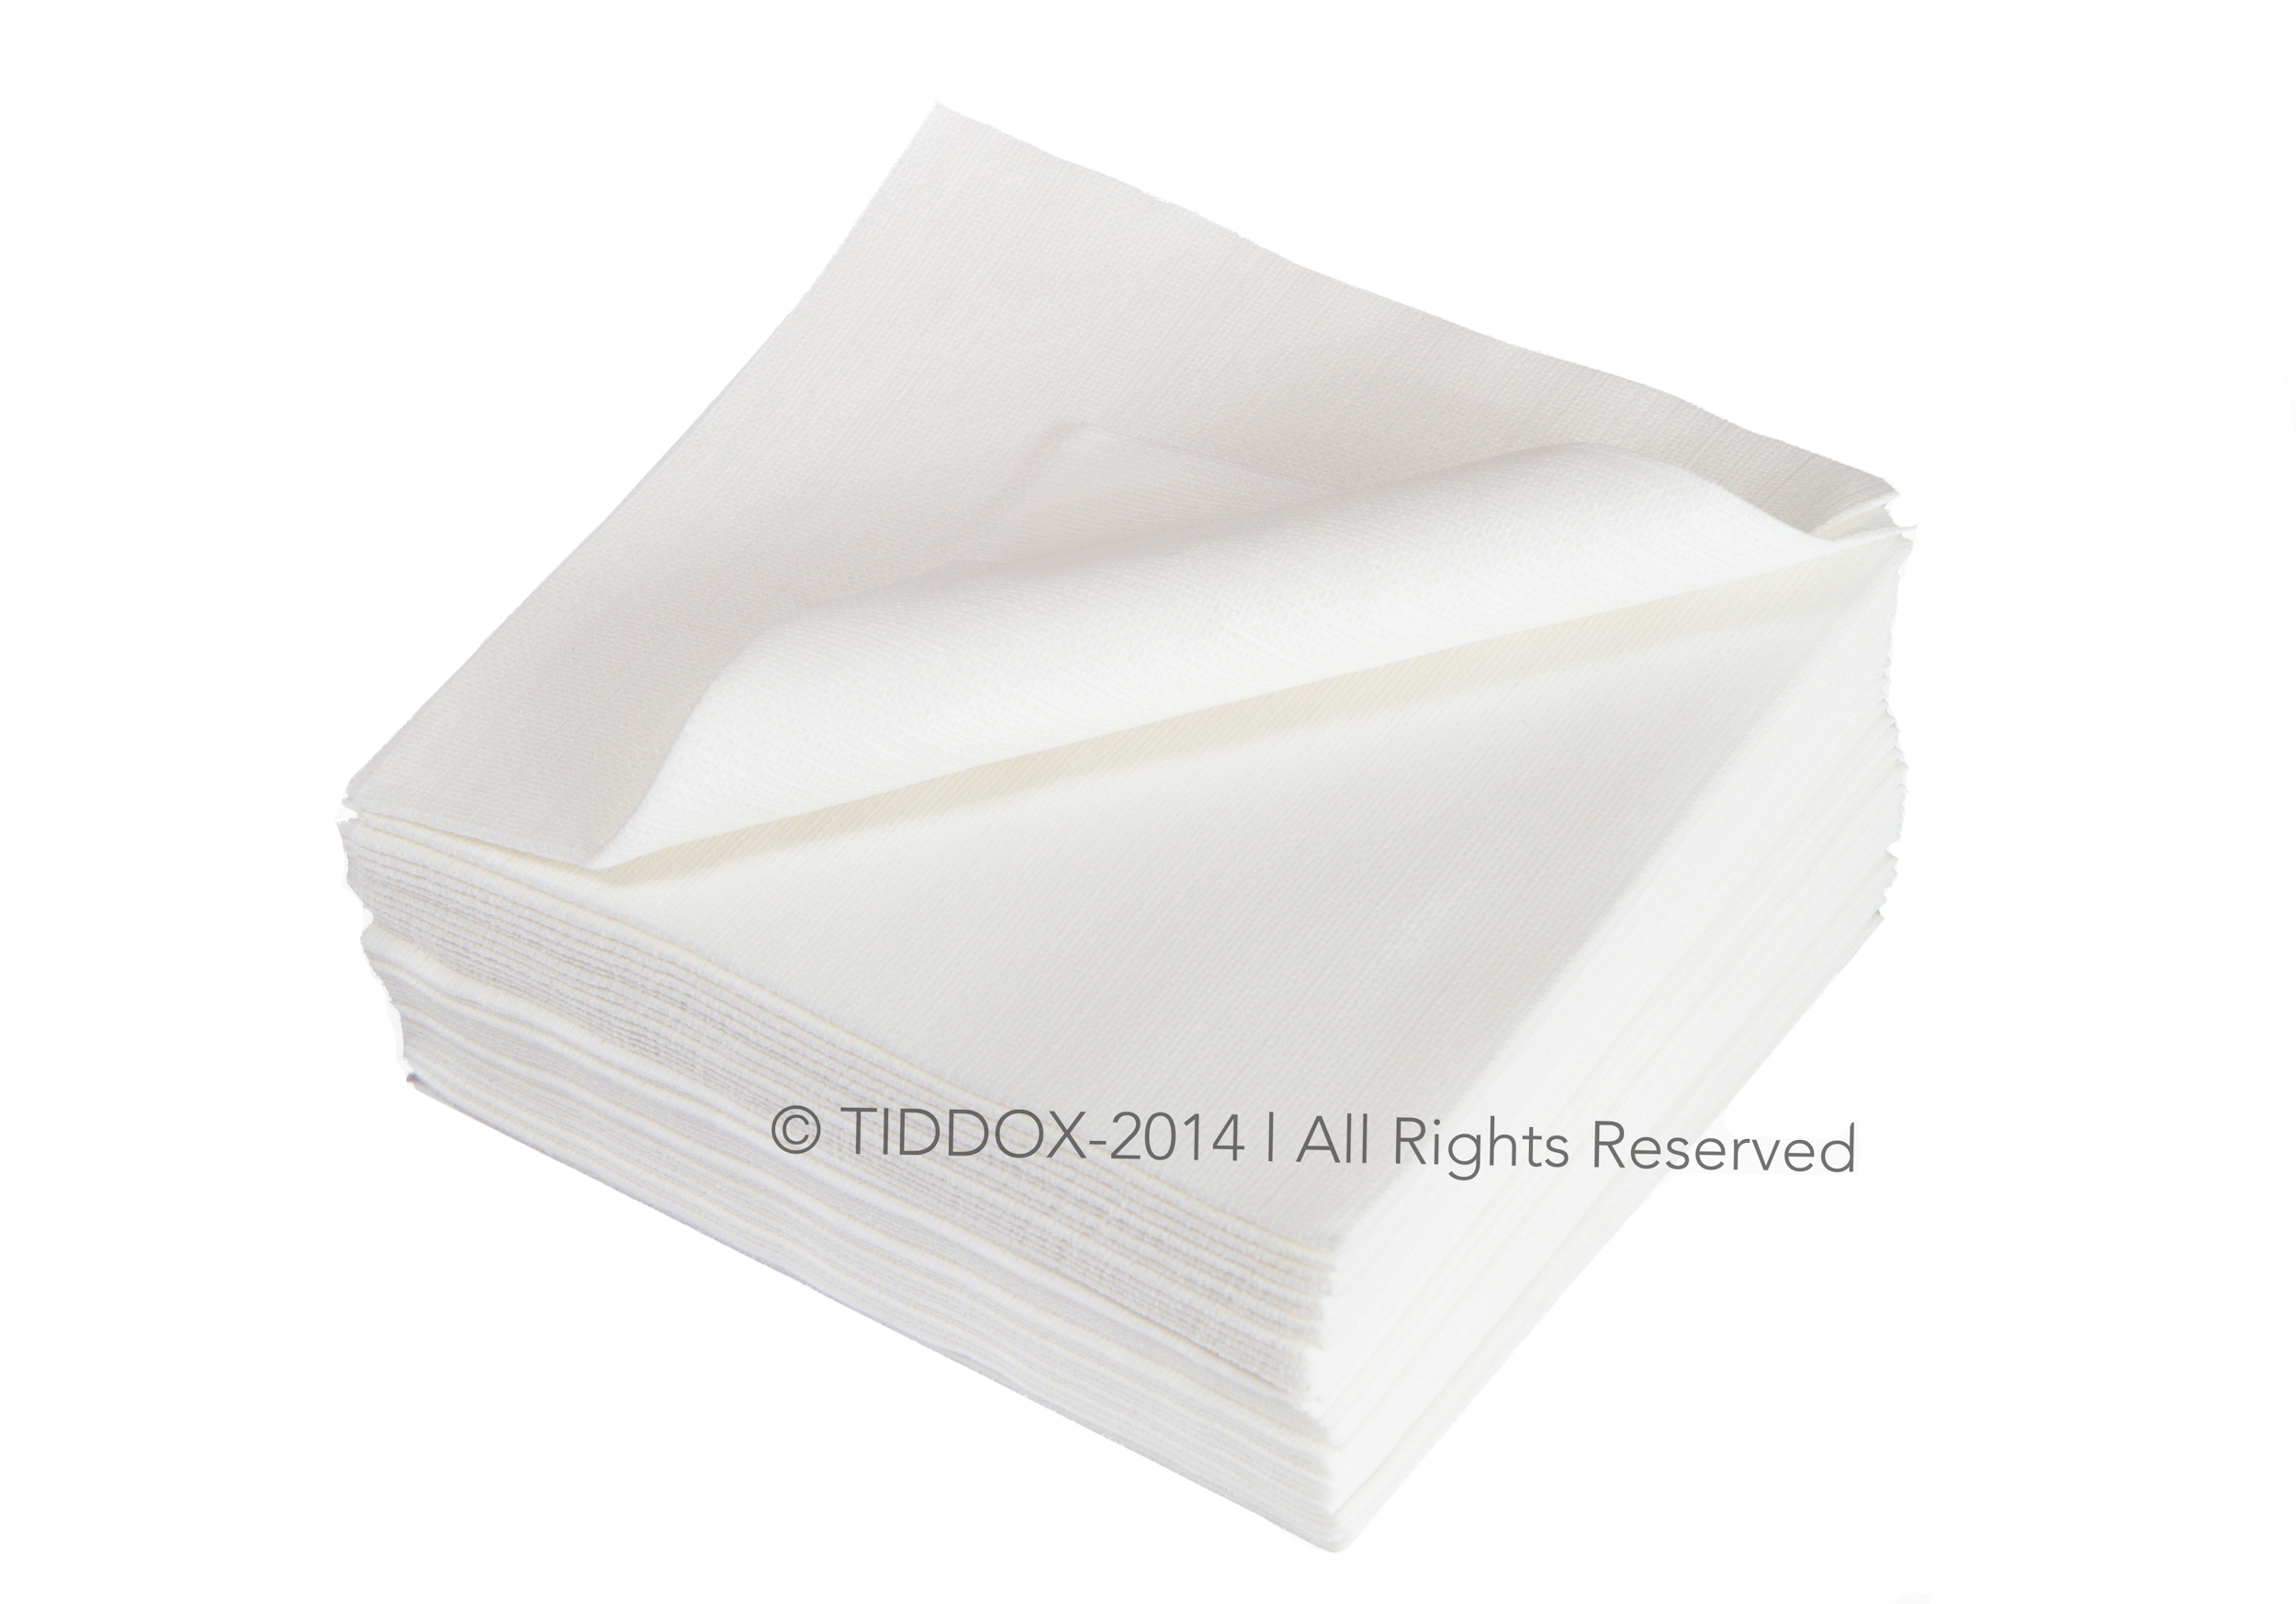 PRINTERS SOLVENT RESISTANT WIPES